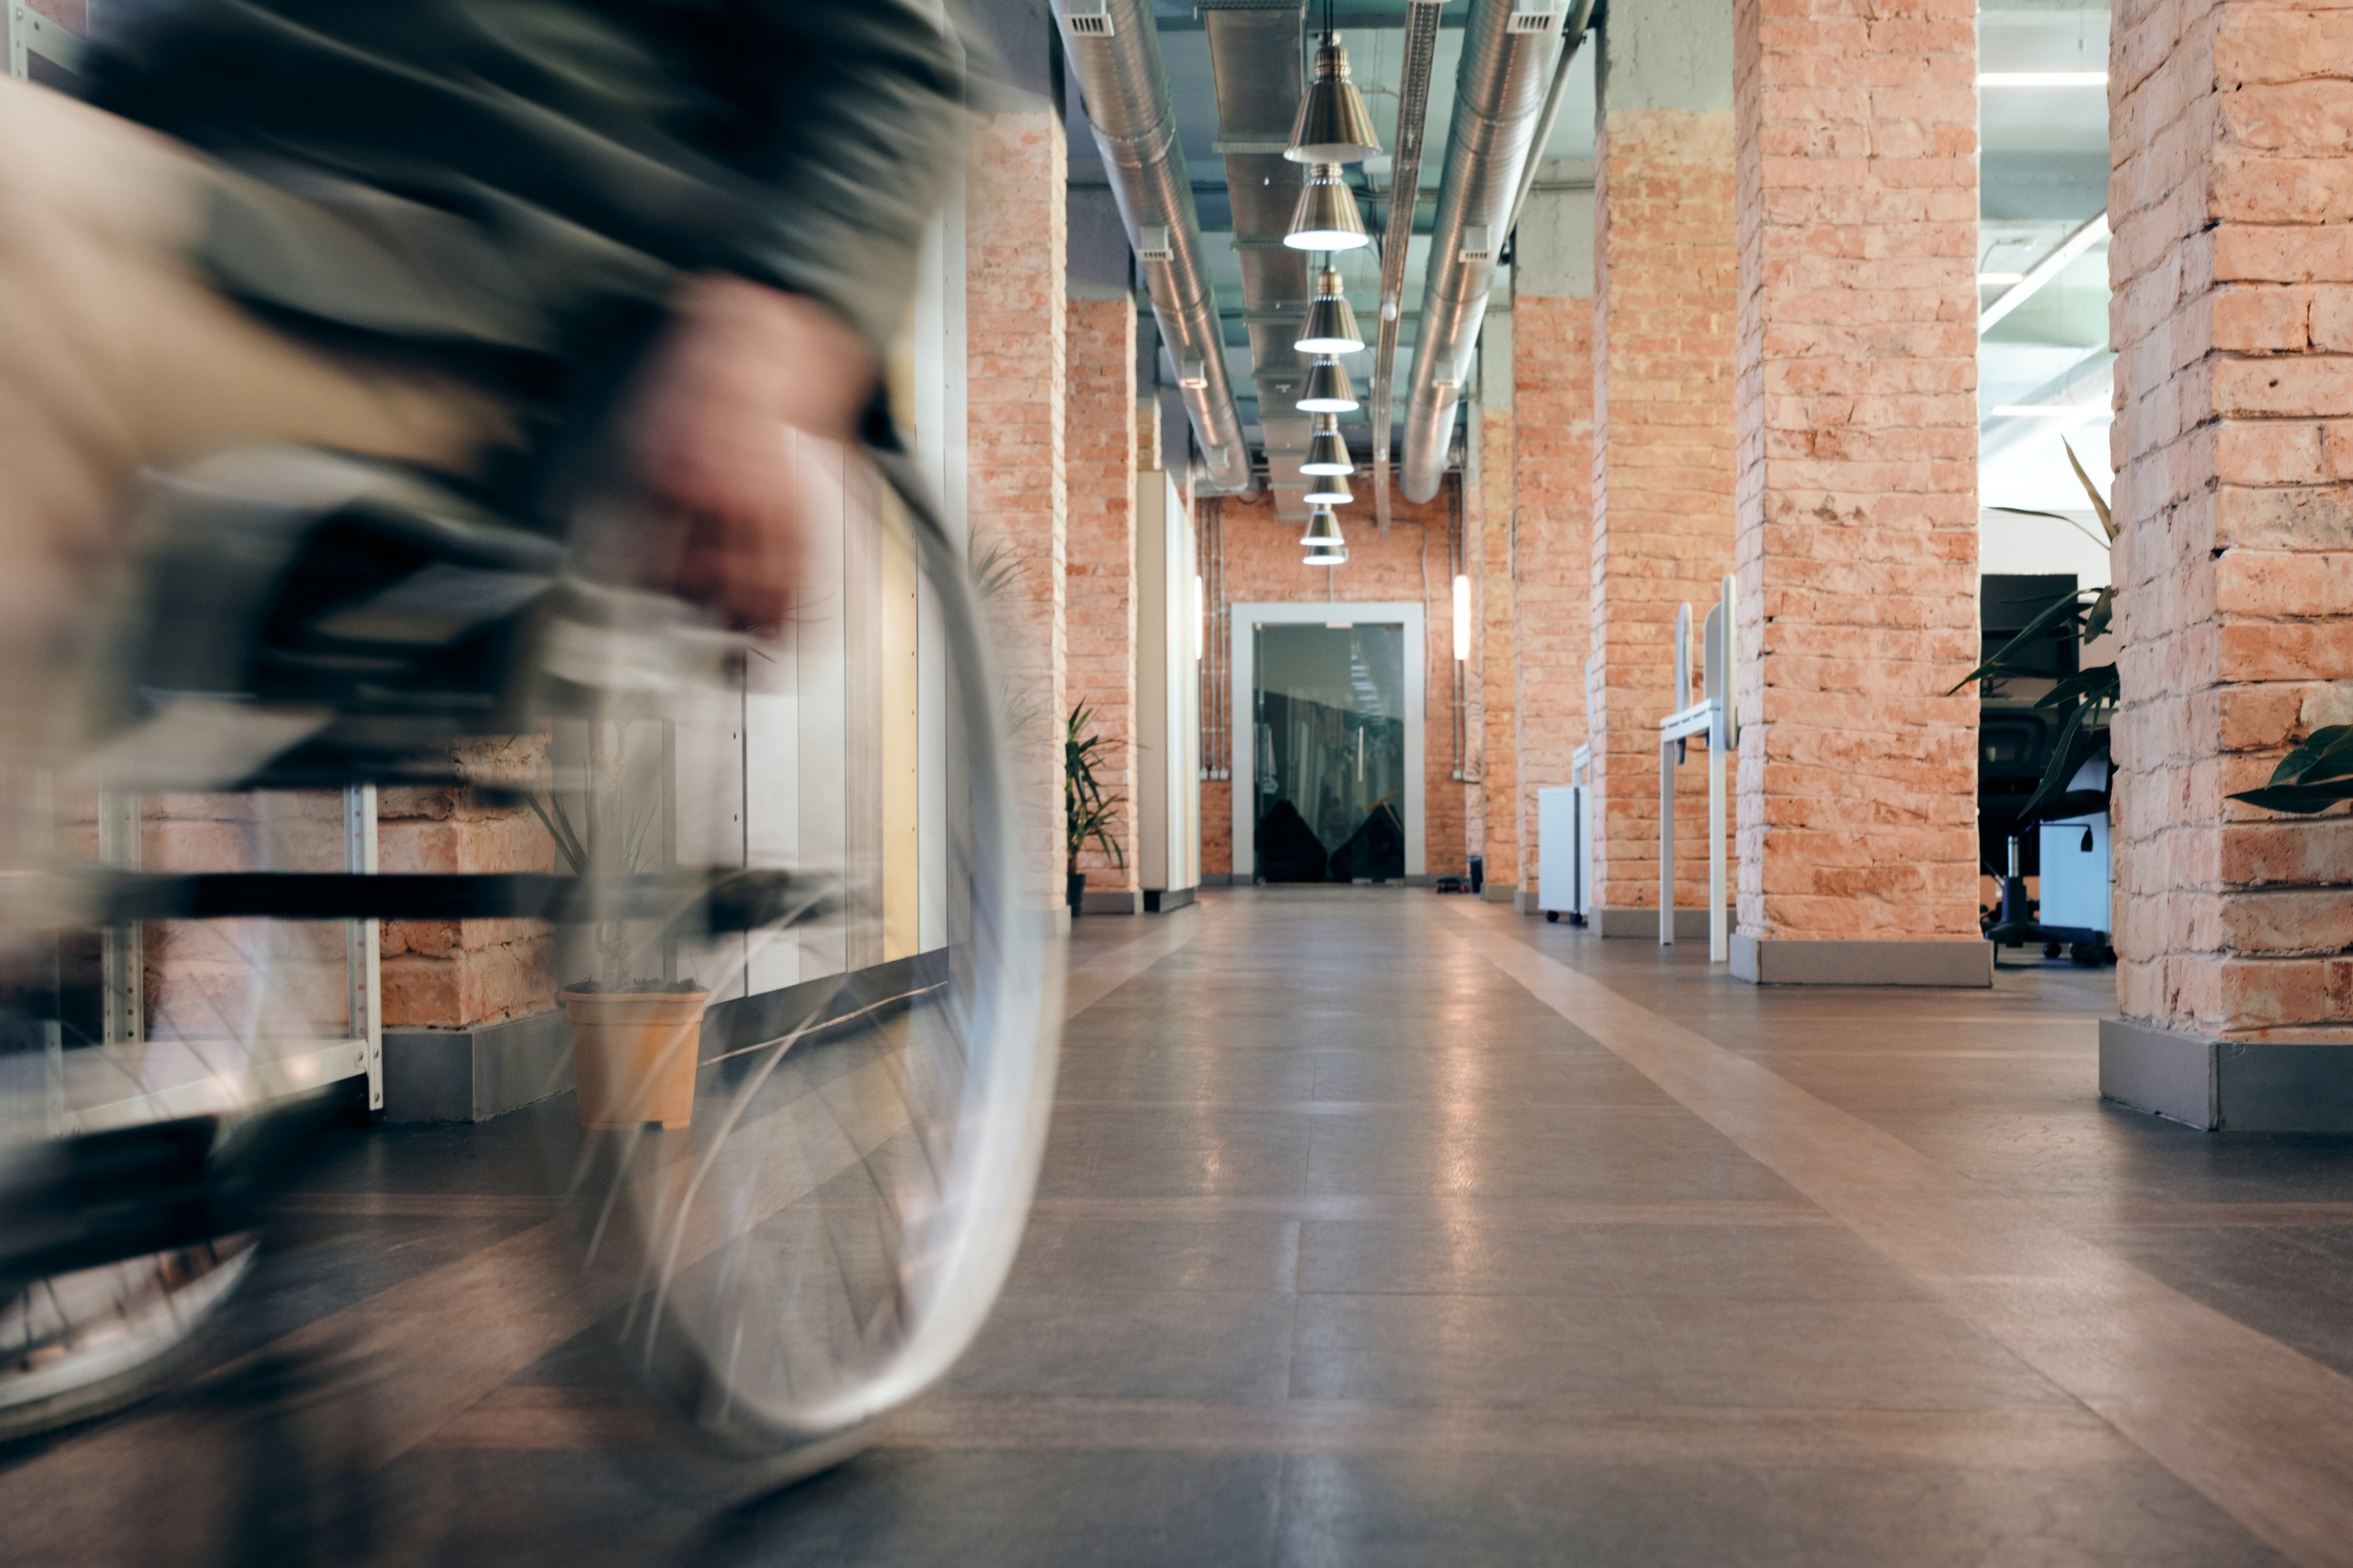 Person in wheelchair moving down hallway of office